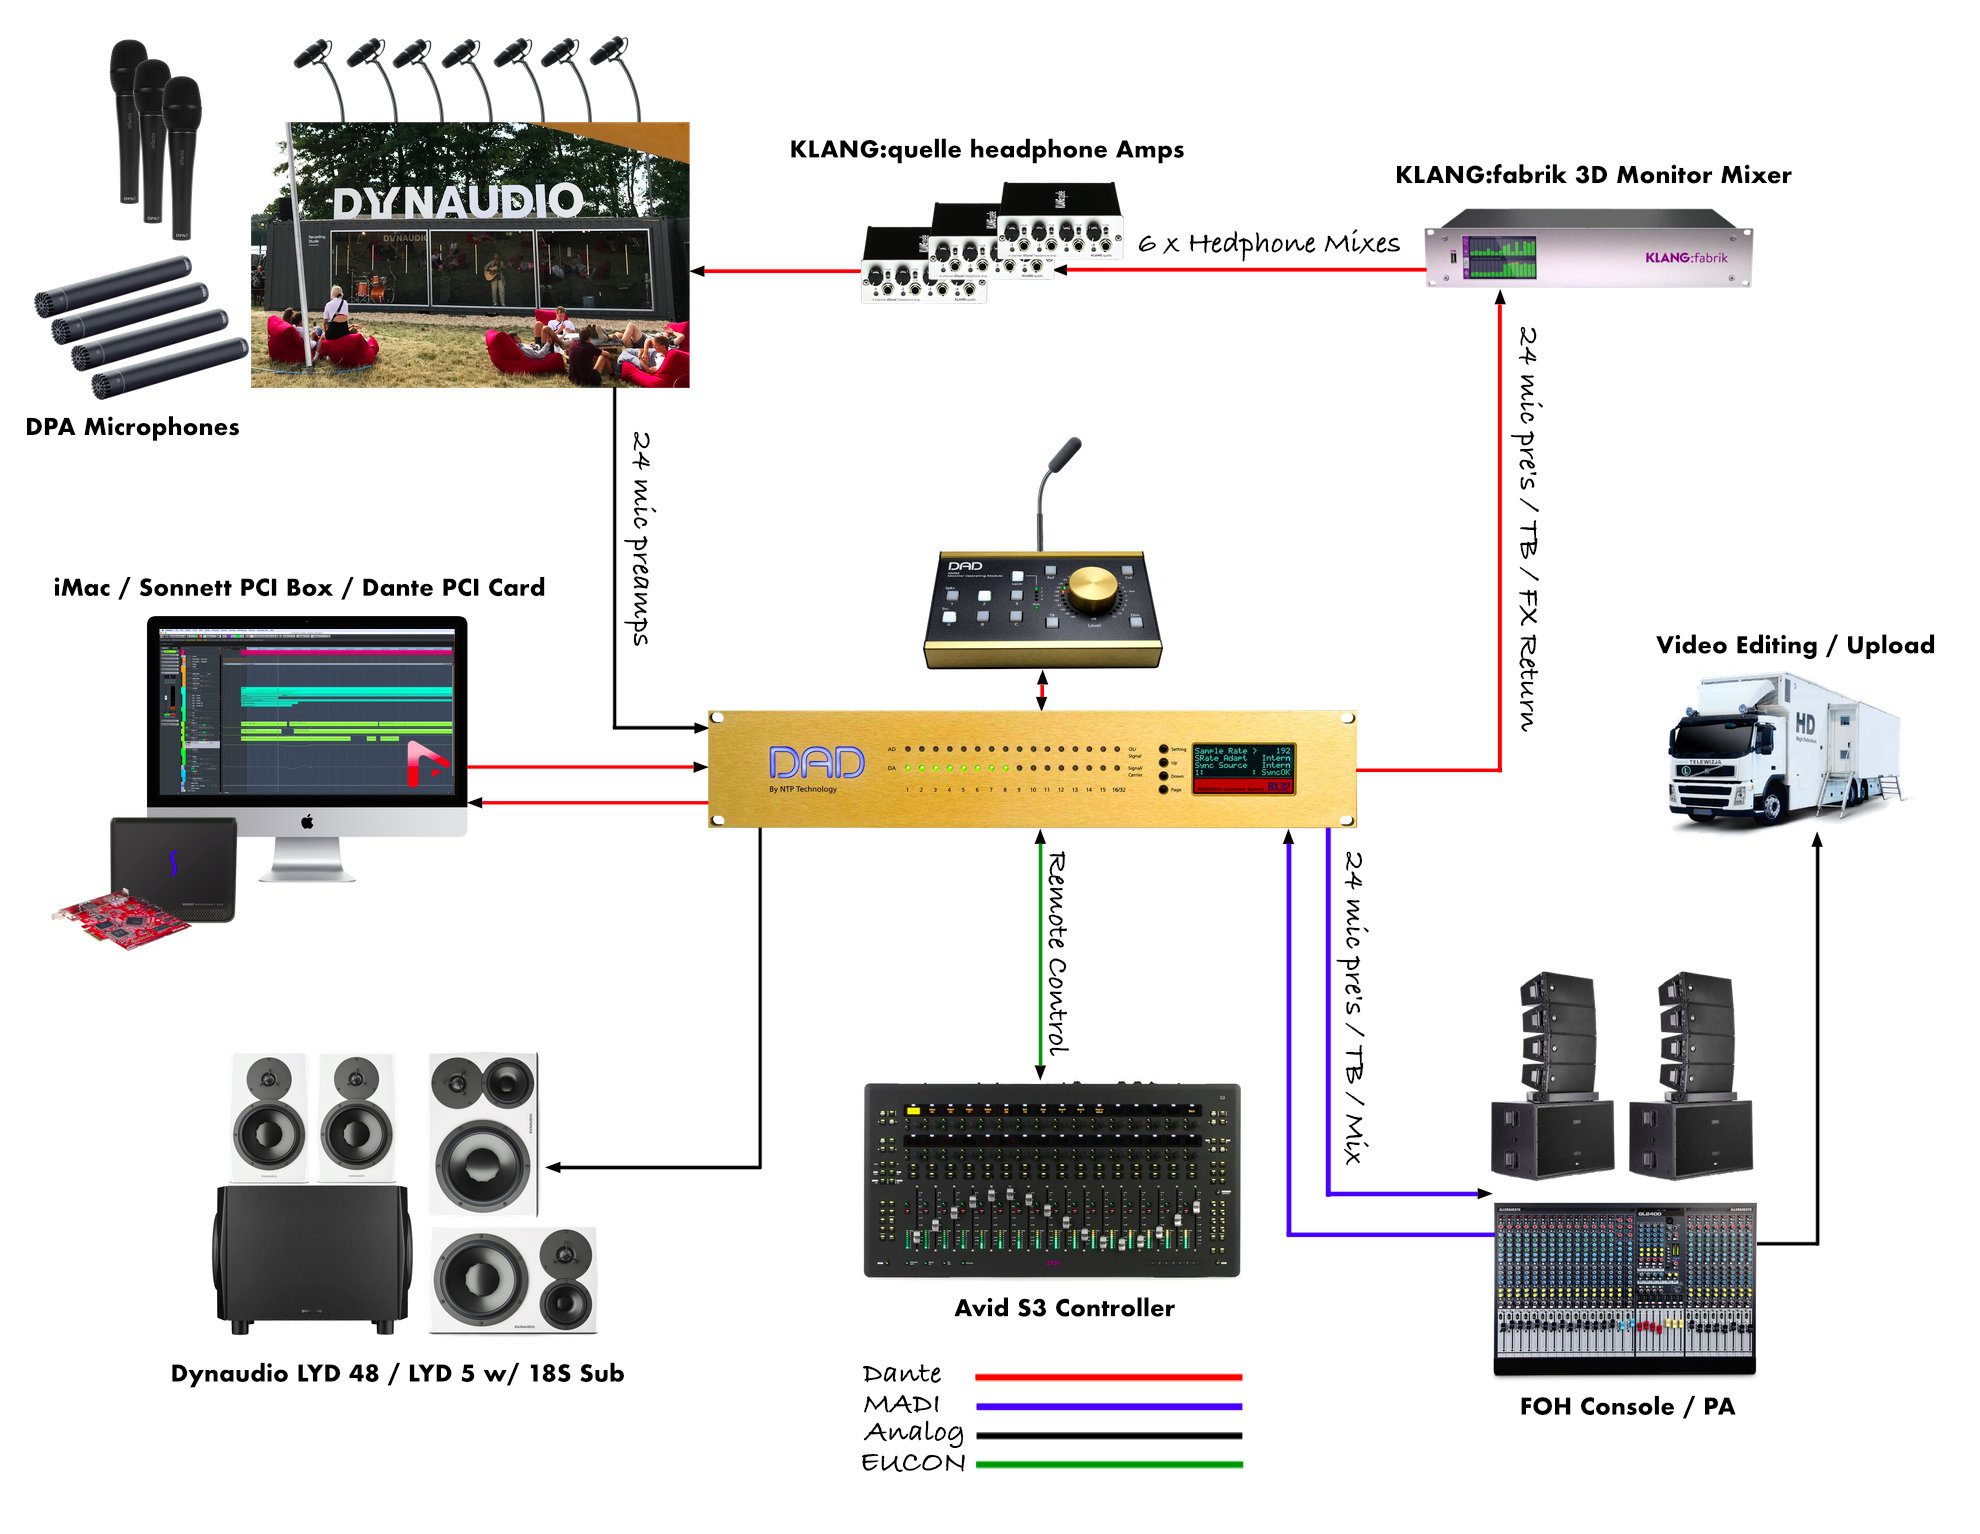 dad-dynaudio-unheard-diagram